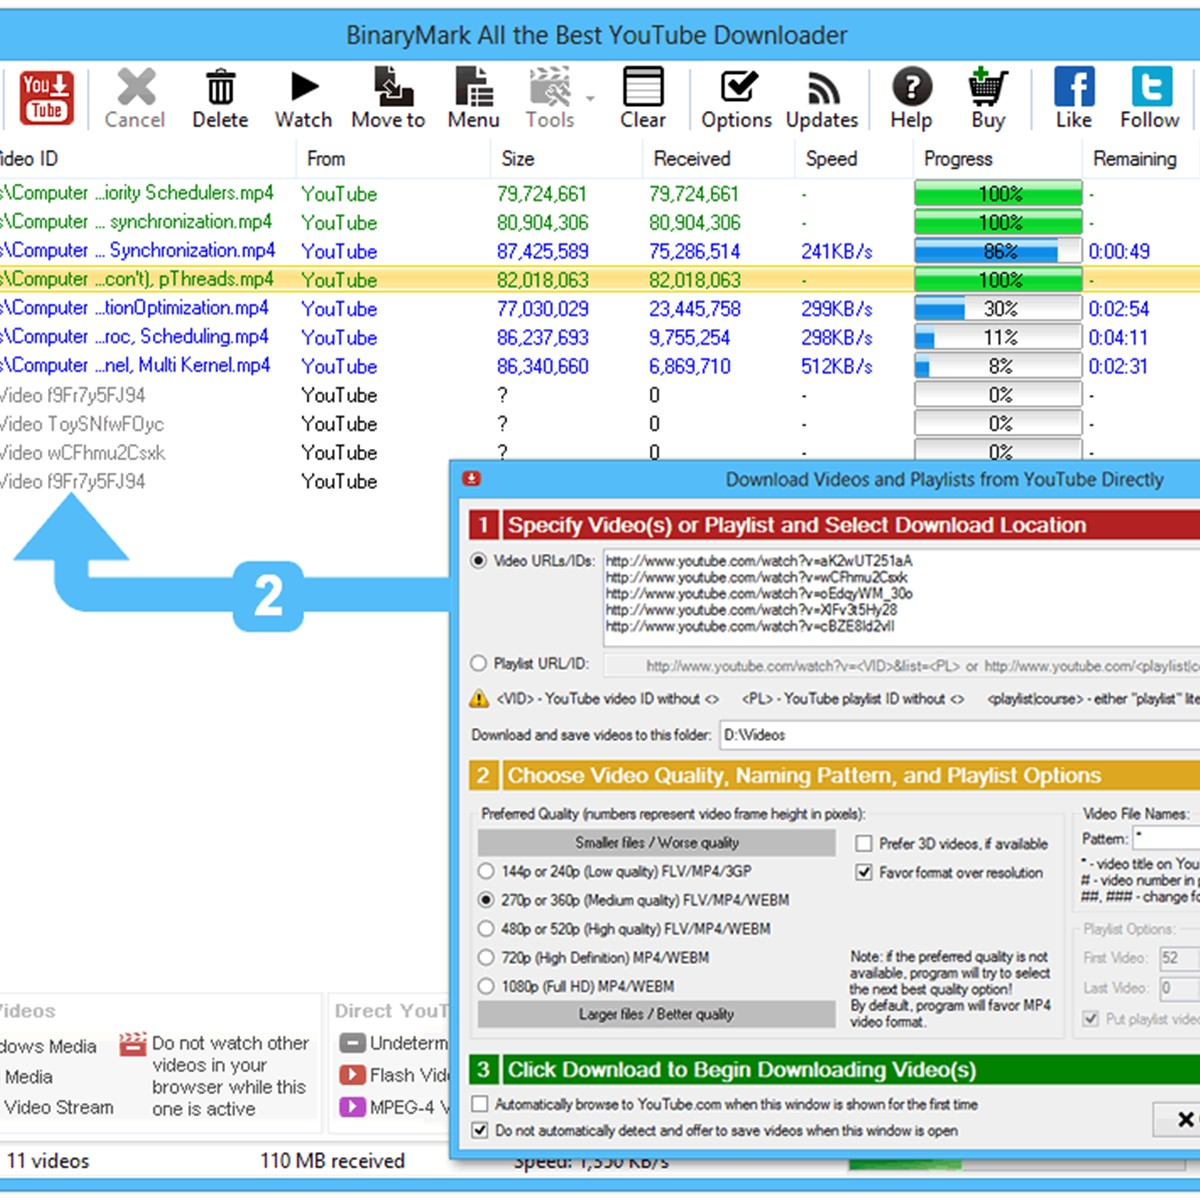 All the Best YouTube Downloader Alternatives and Similar Software